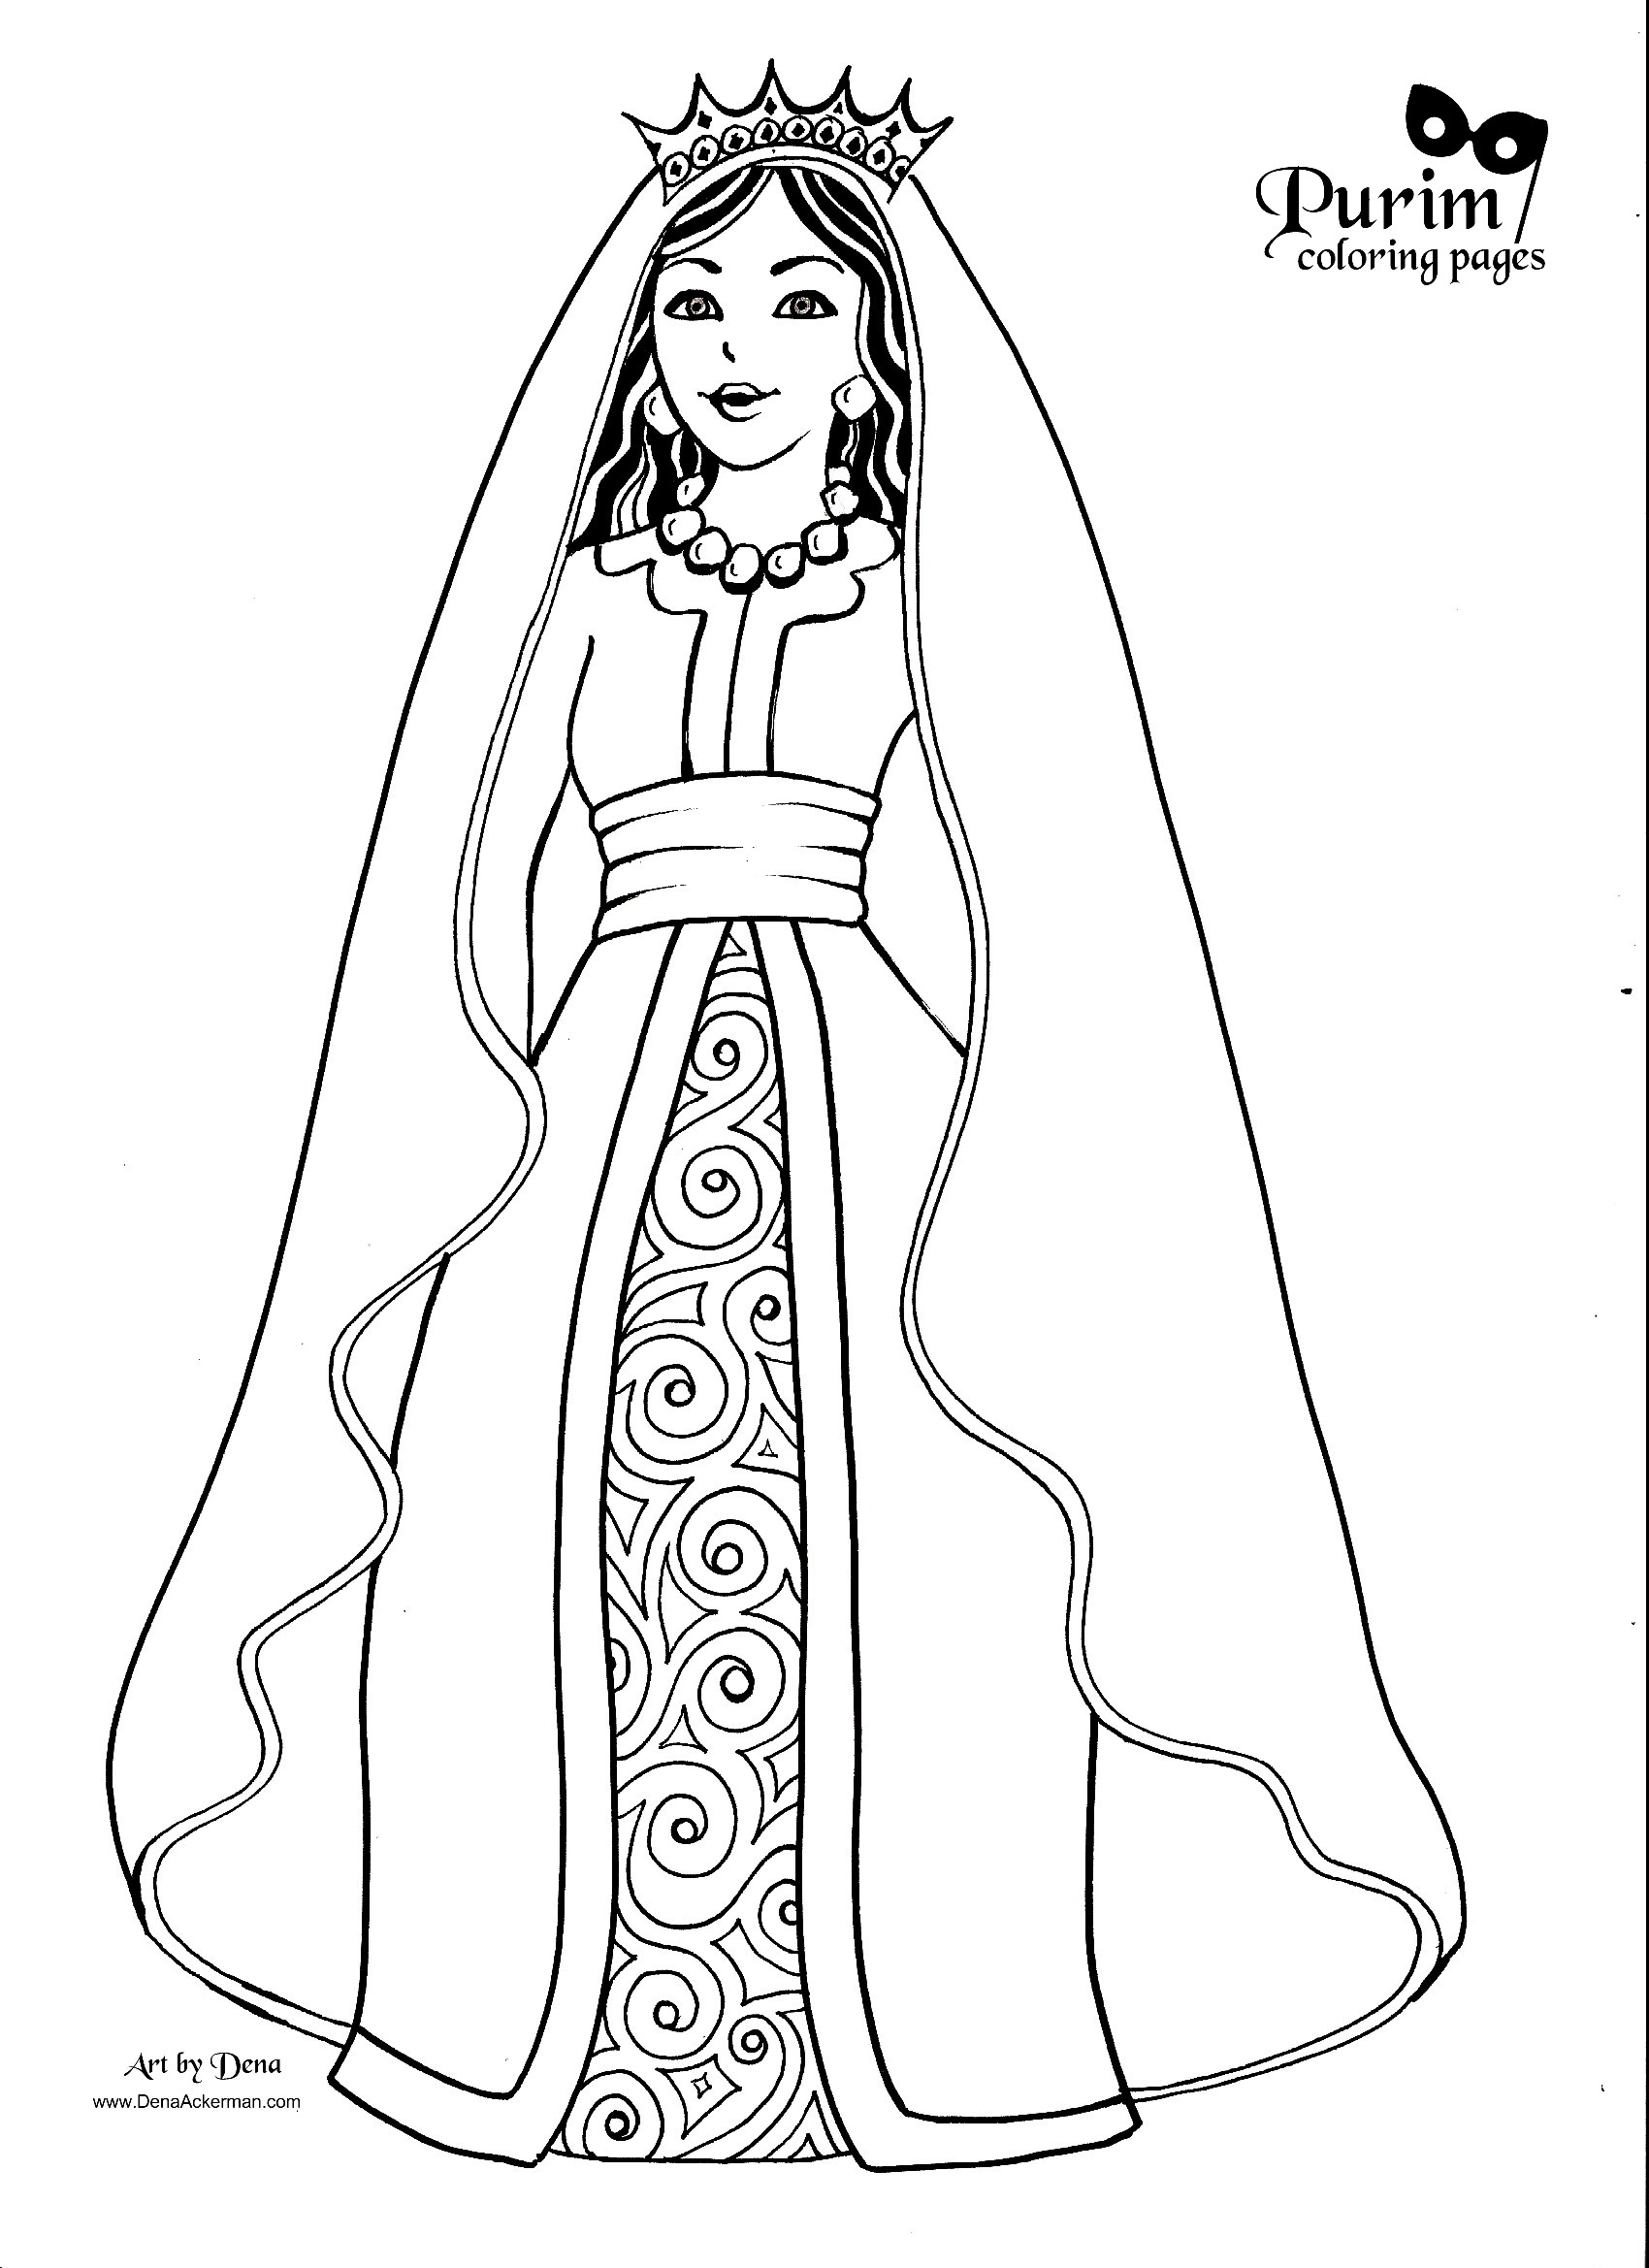 Queen 106228 Characters Printable Coloring Pages